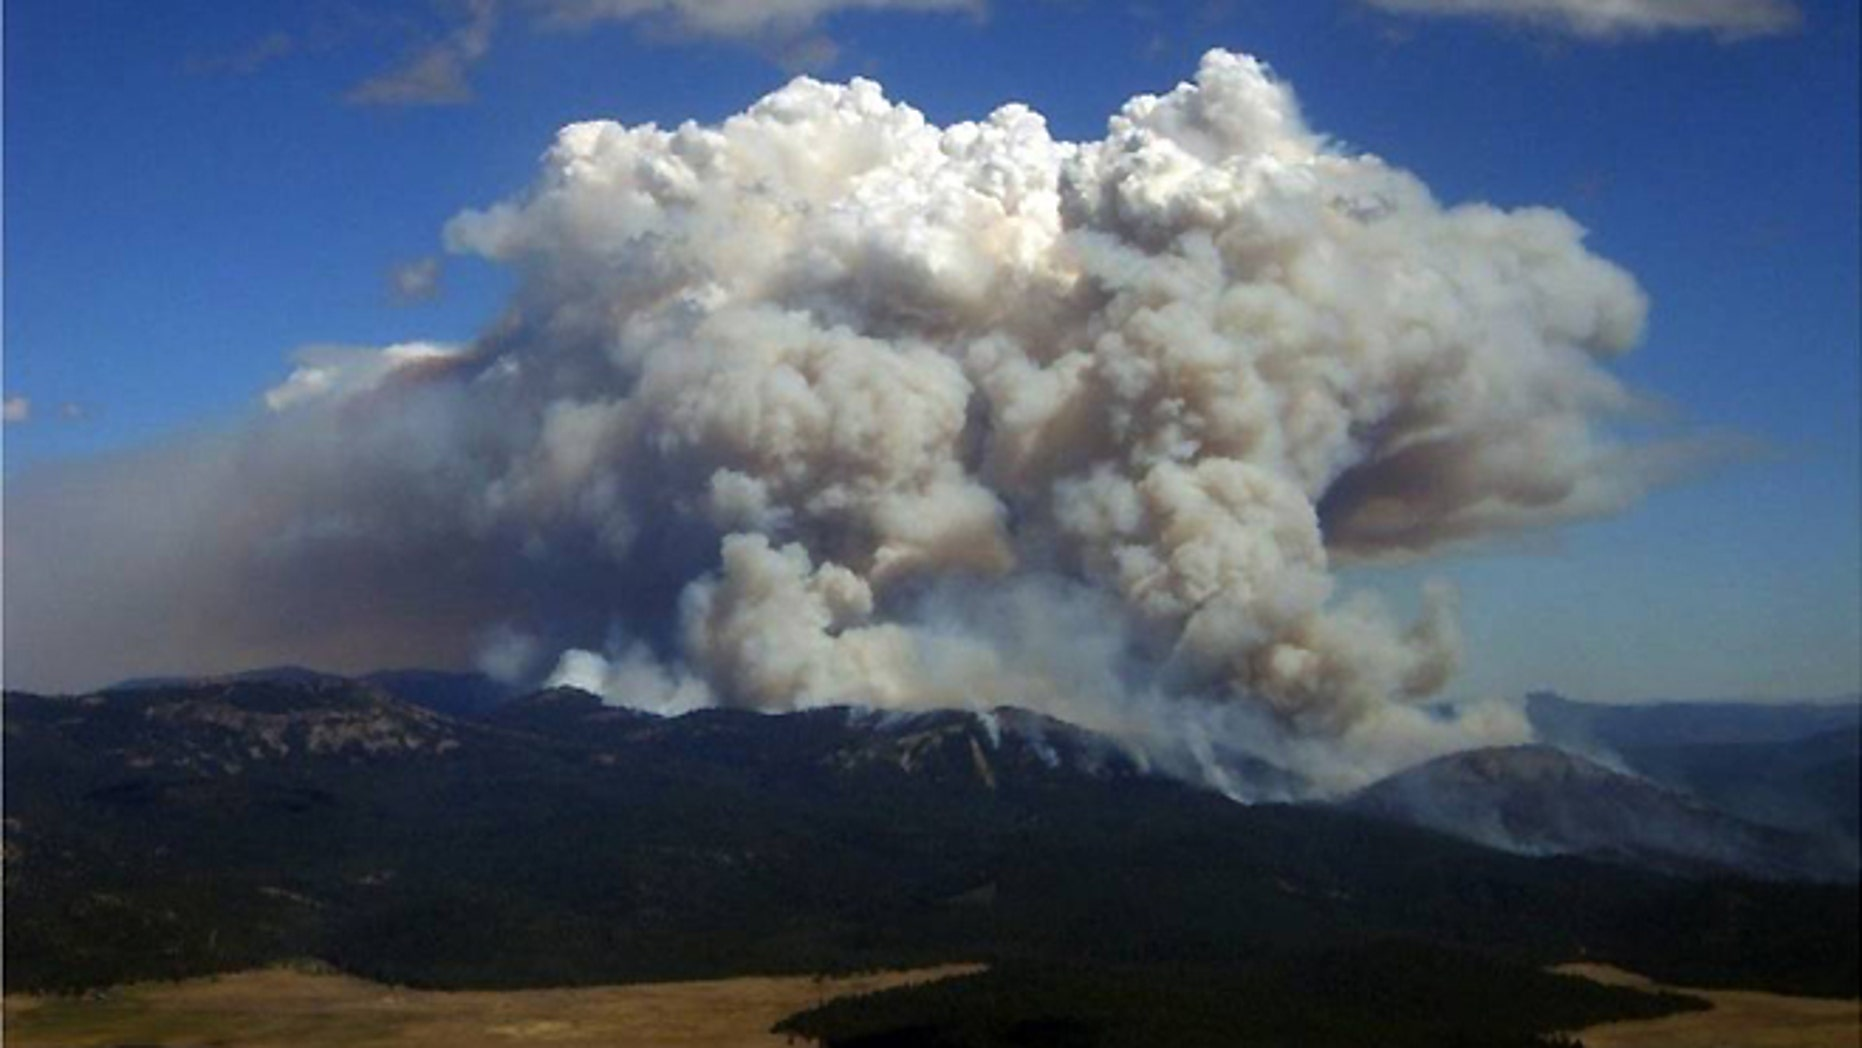 Smoke rises from the Moonlight fire, which burned in Plumas and Lassen counties in California for 22 days in September 2007.